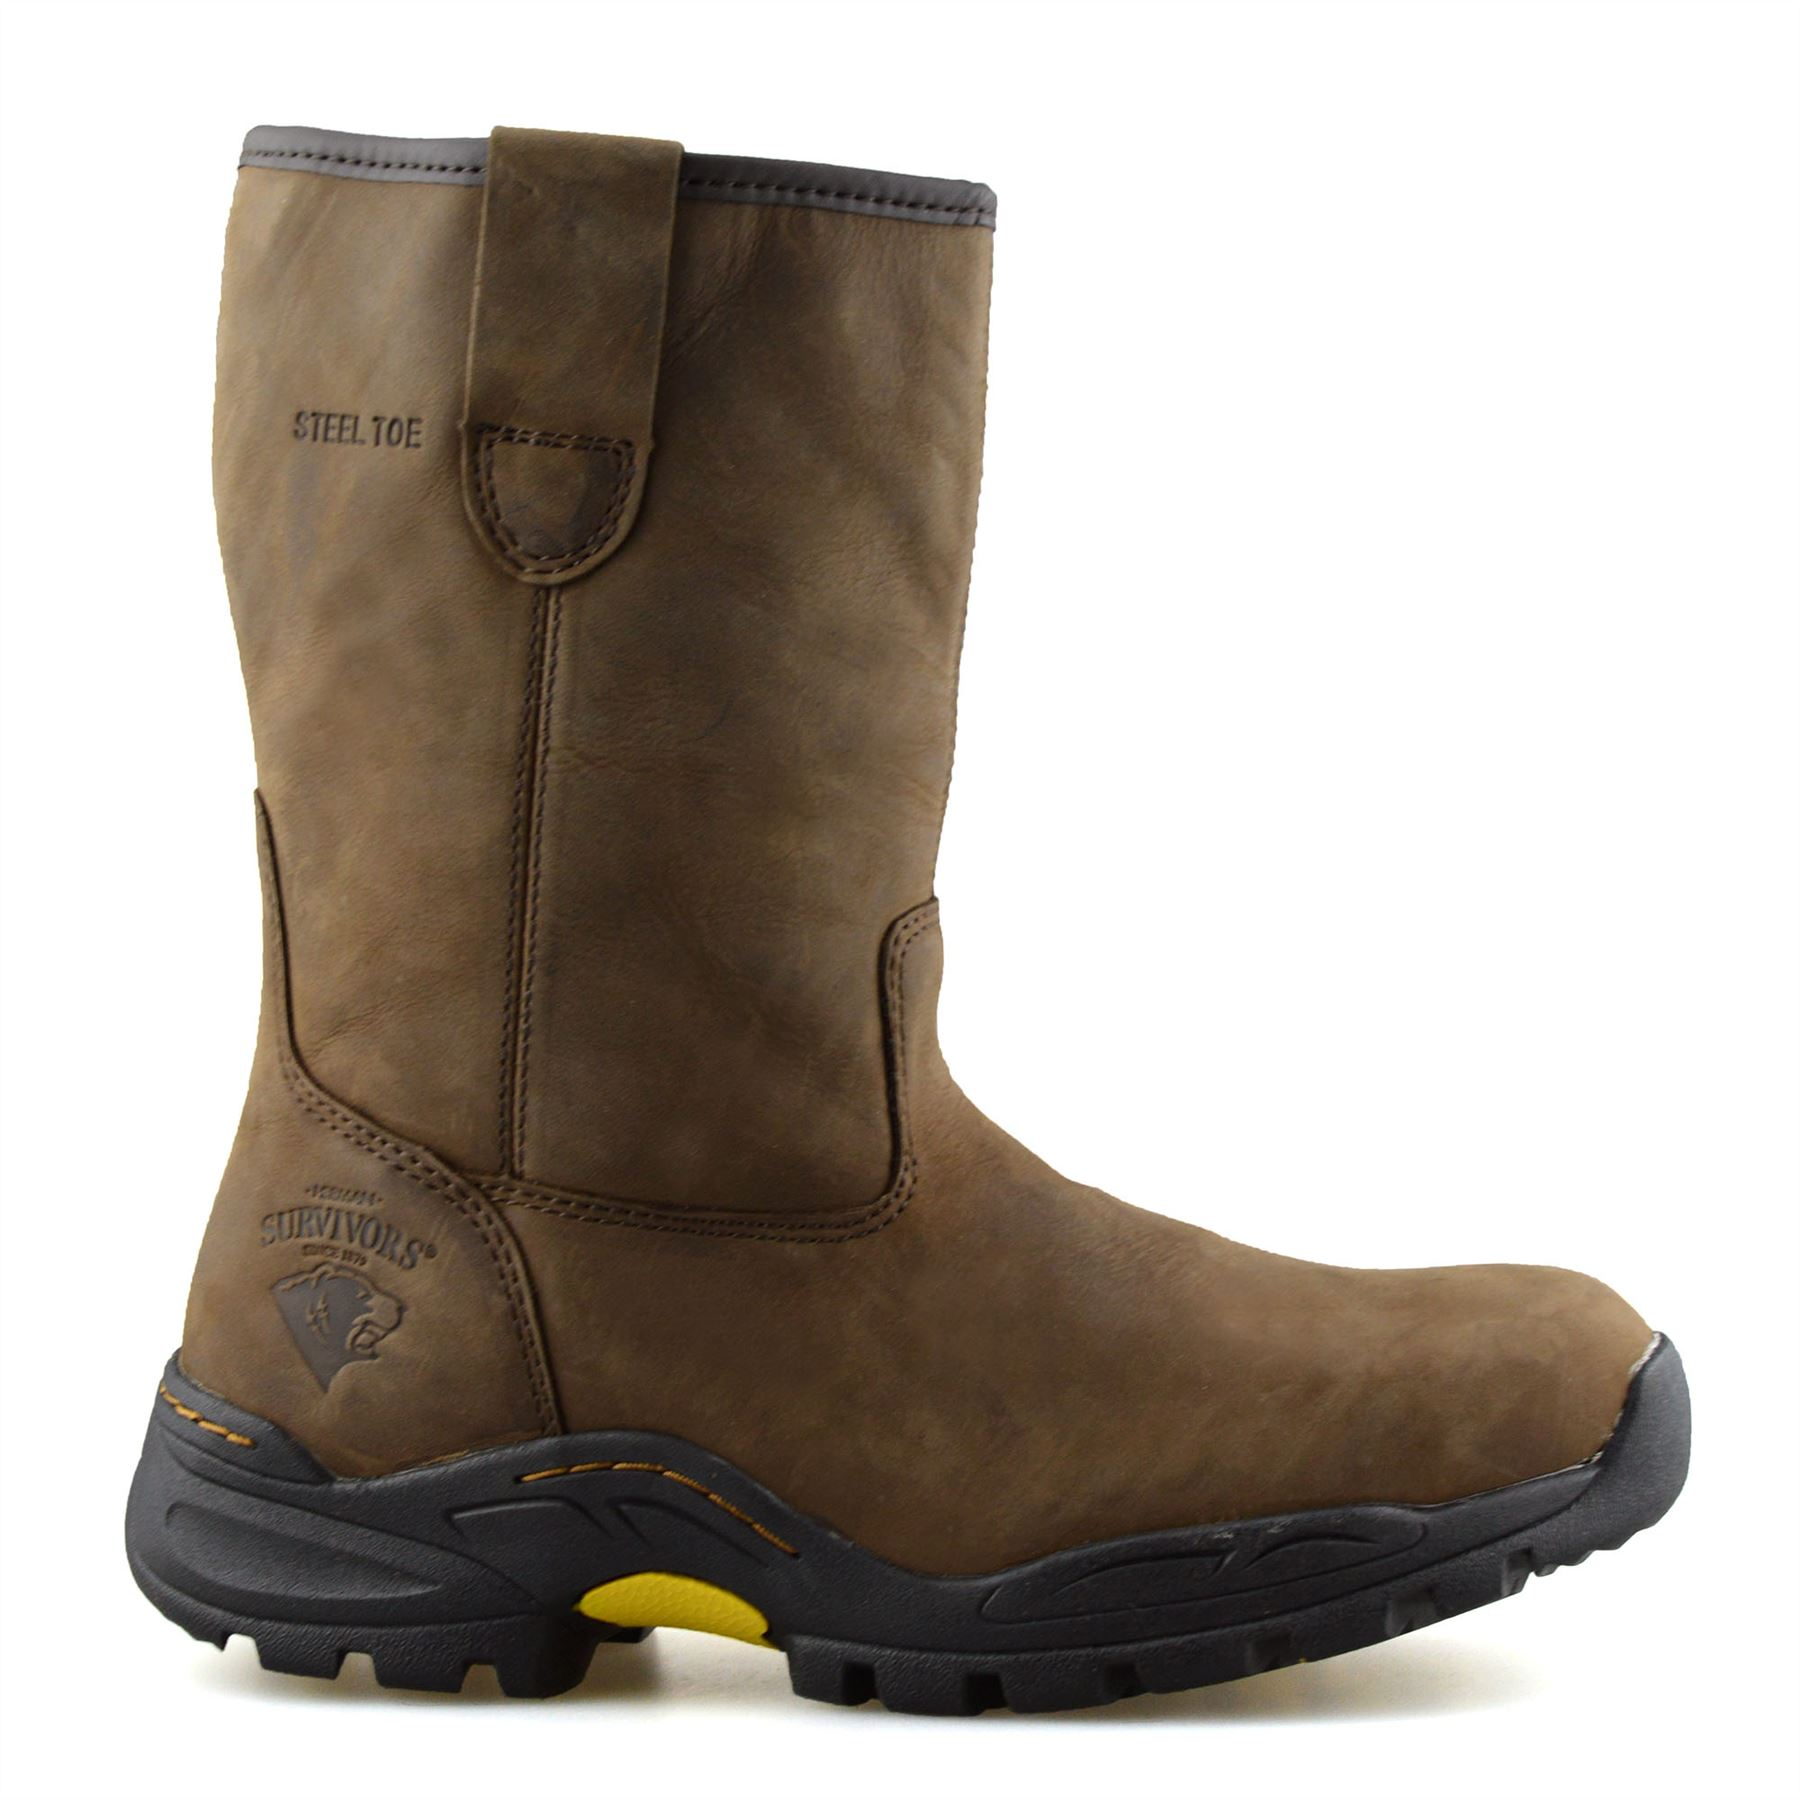 Neptune Lined Rigger Wellington safety boot steel toe and midsole FW75